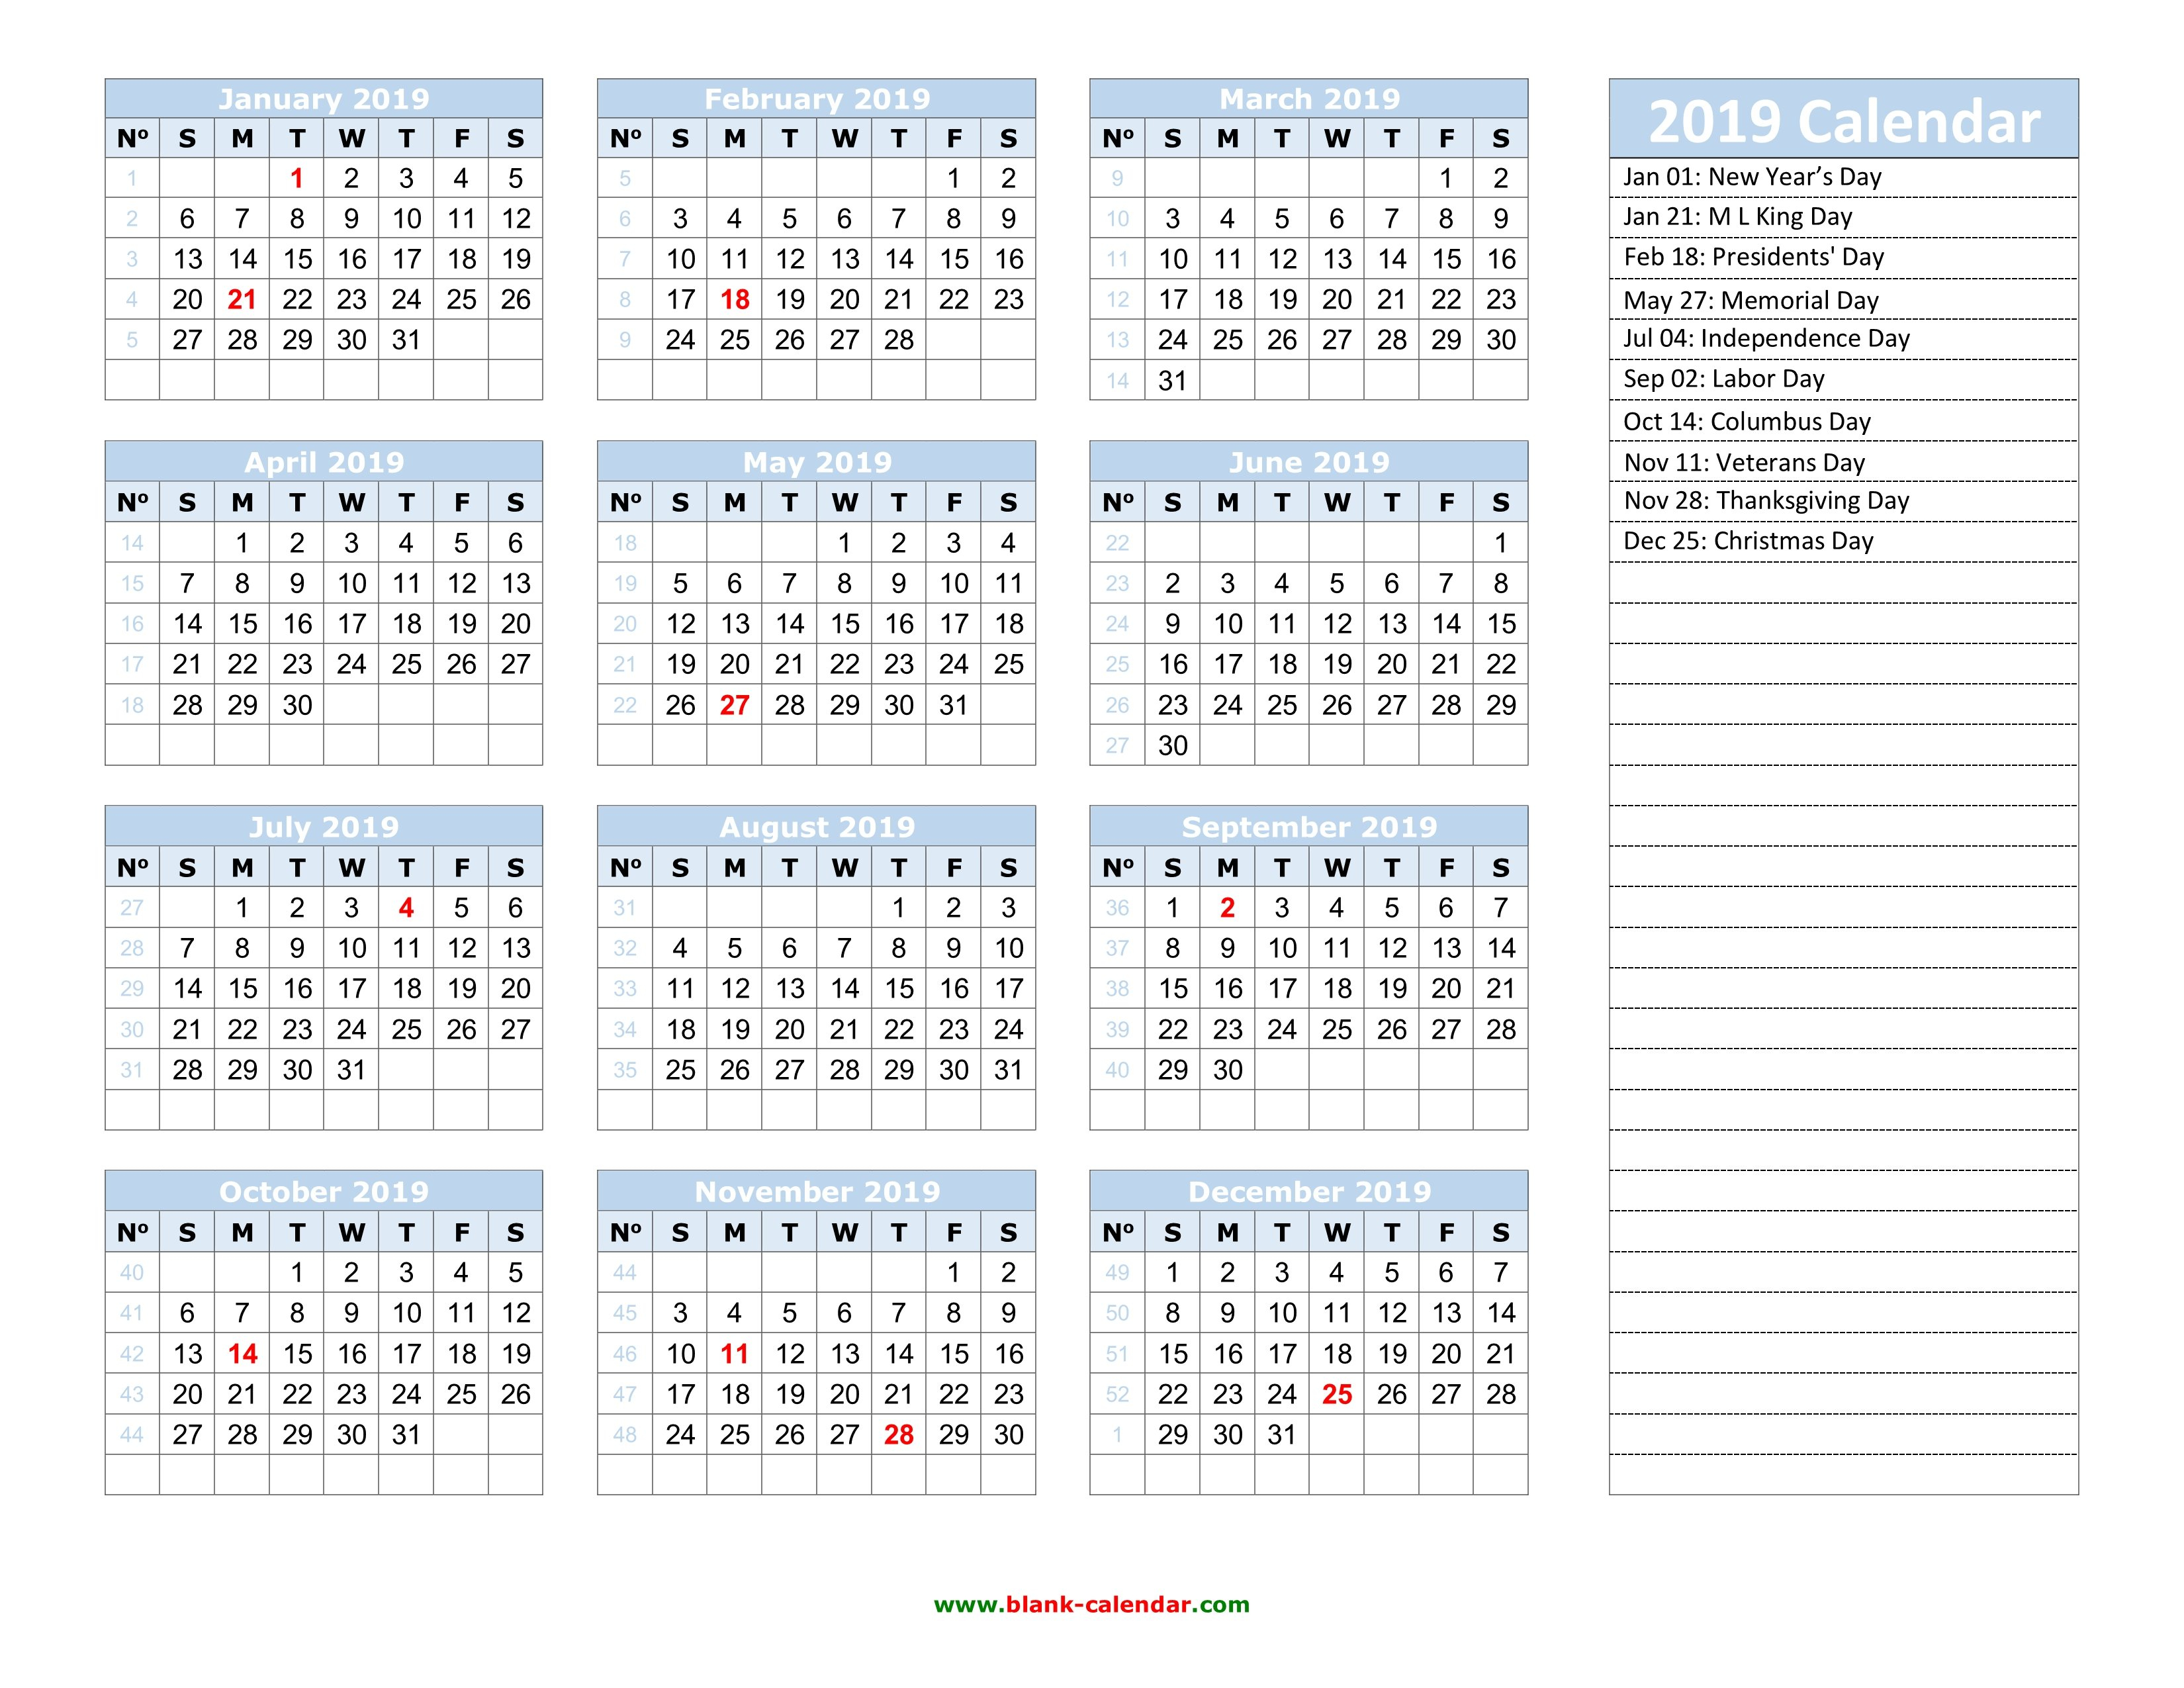 Yearly Calendar 2019 | Free Download And Print 2019 Calendar 52 Weeks